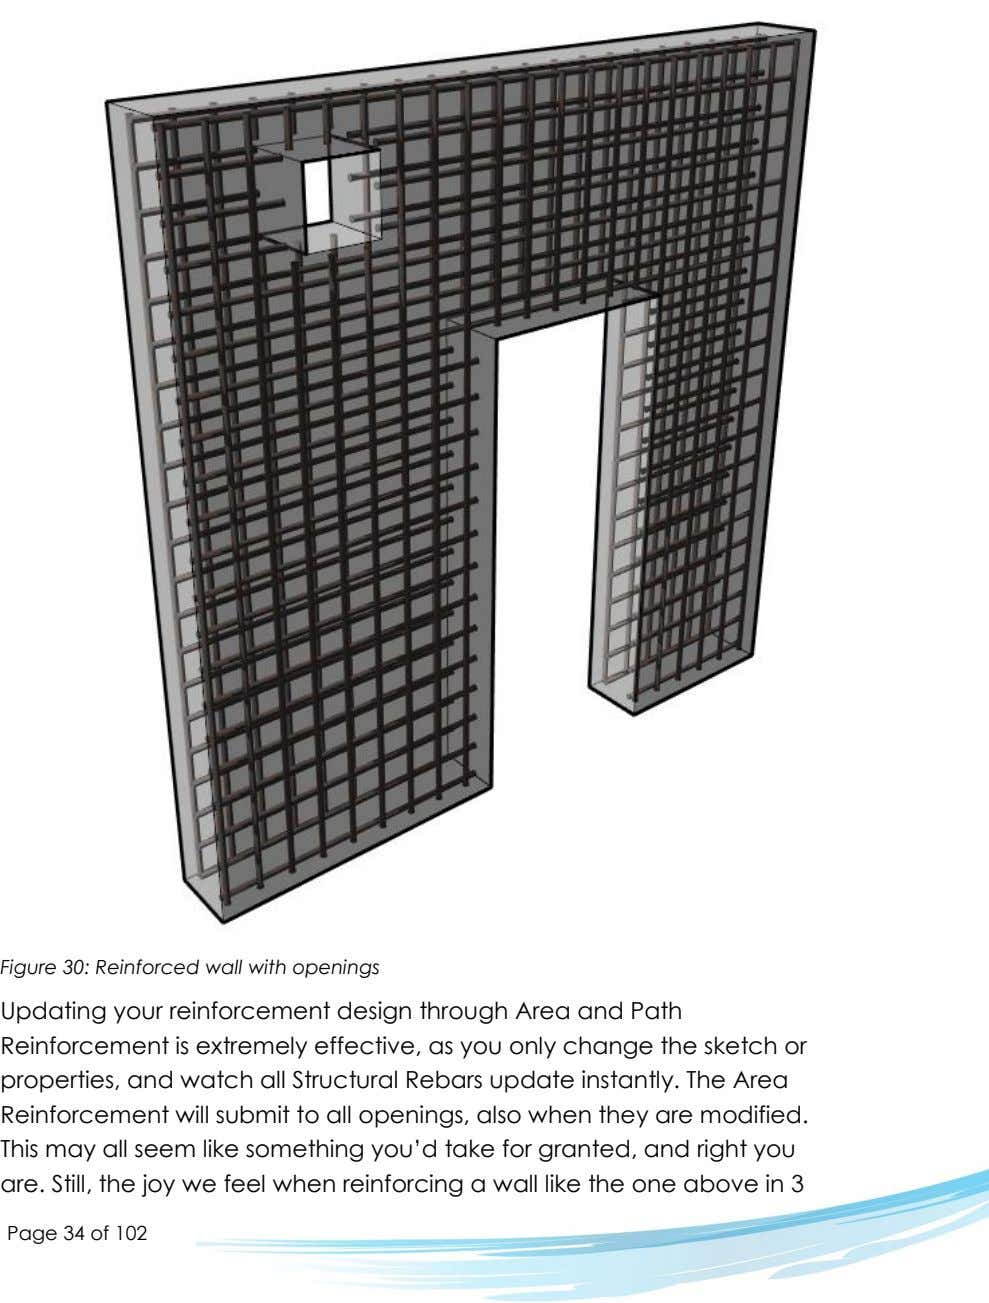 Figure 30: Reinforced wall with openings Updating your reinforcement design through Area and Path Reinforcement